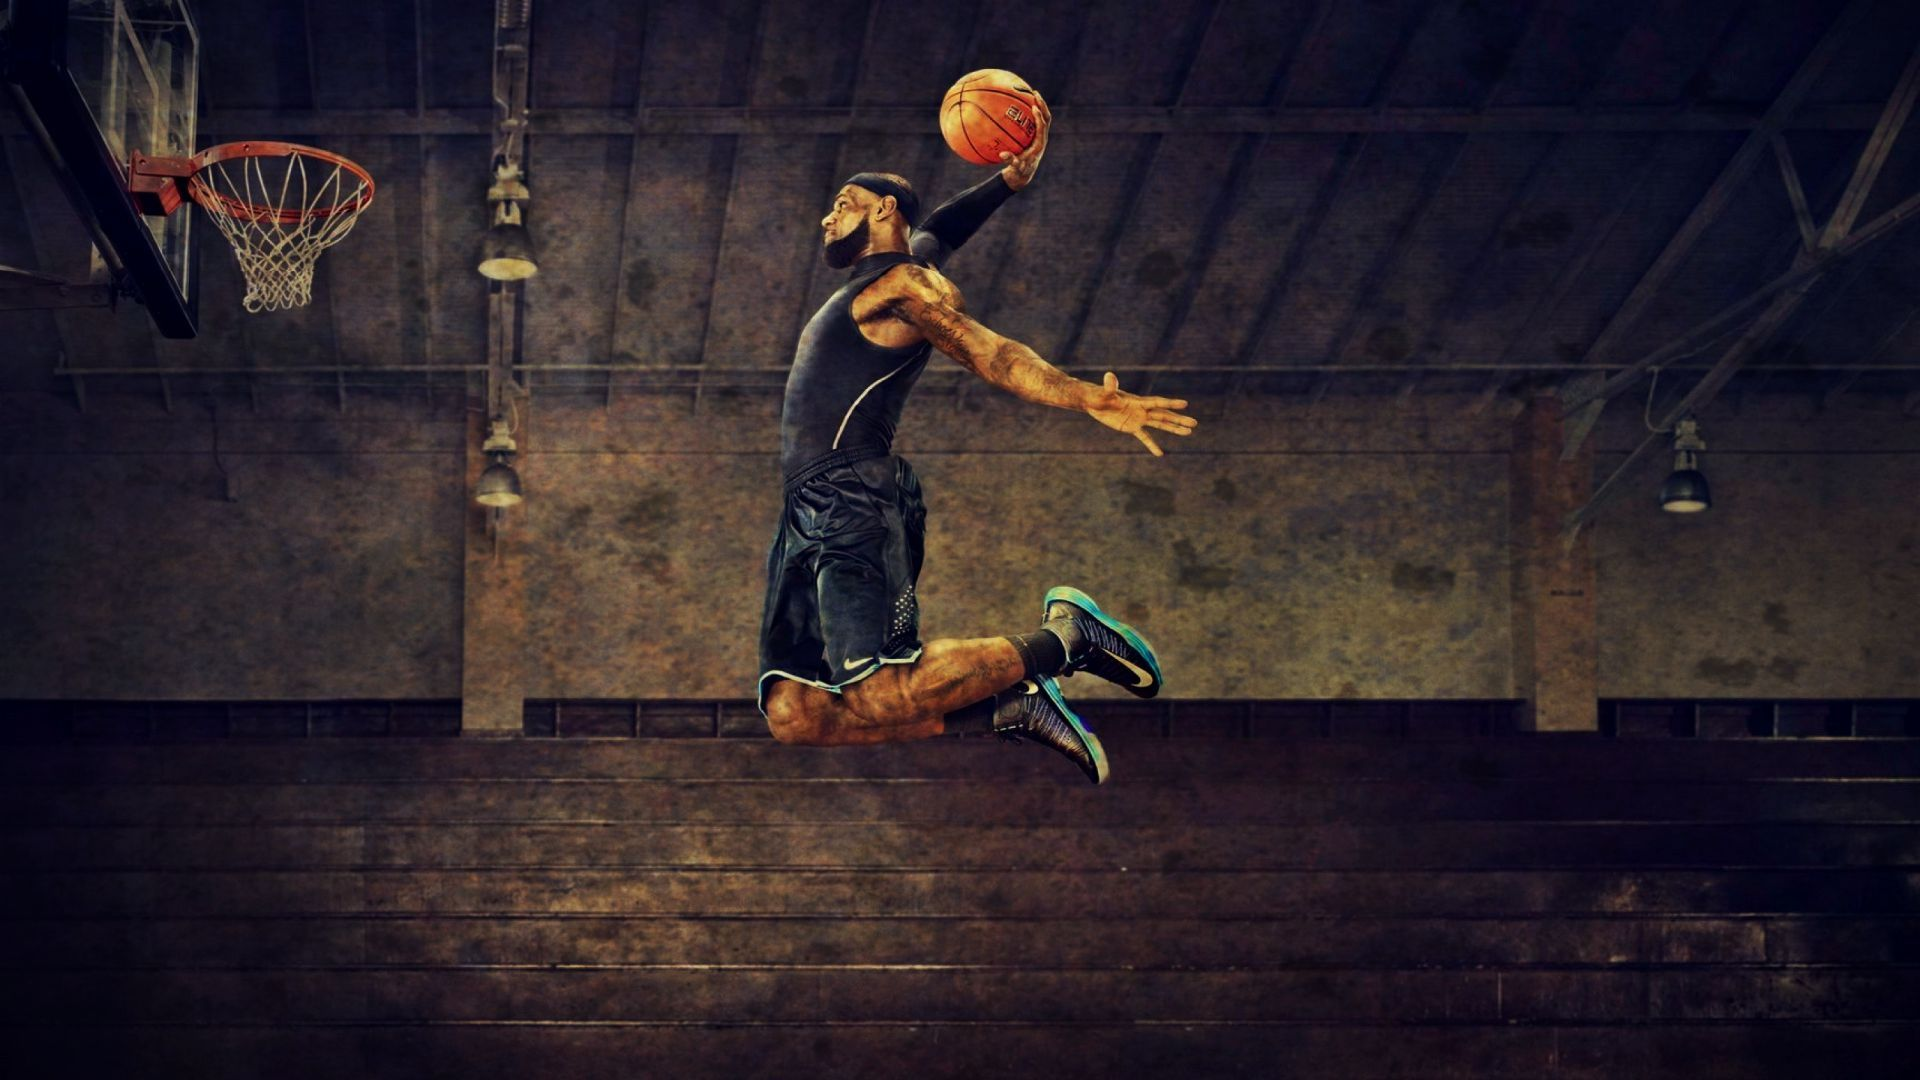 How To Make A Dynamic Wallpaper For Iphone X Lebron James Wallpaper Photos 7166 Wallpaper Wallpaper